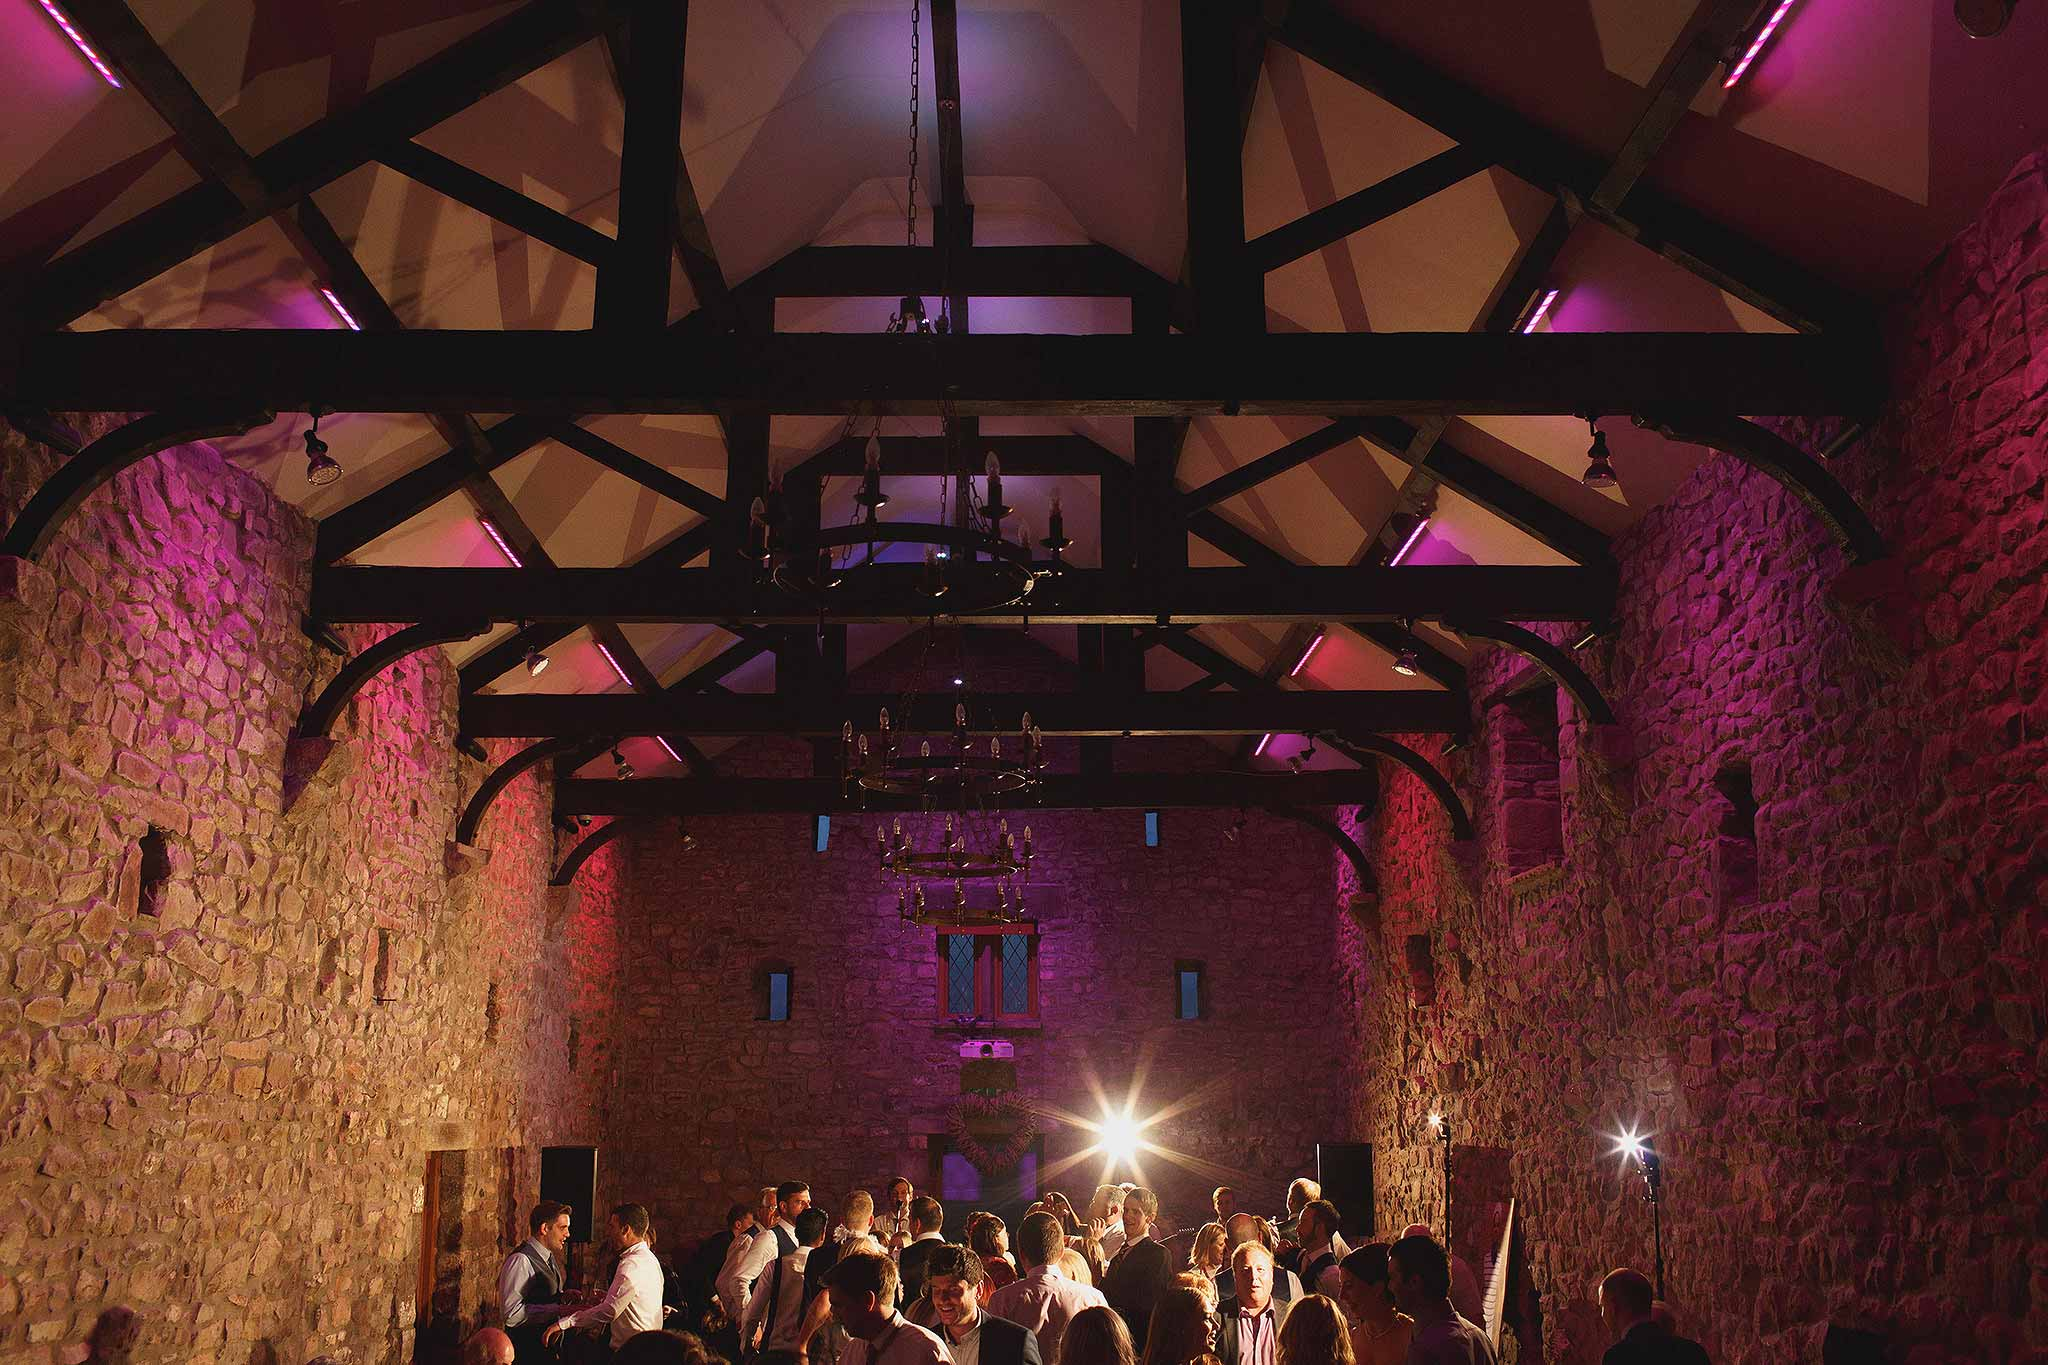 Browsholme Hall lit up inside at night for a wedding party